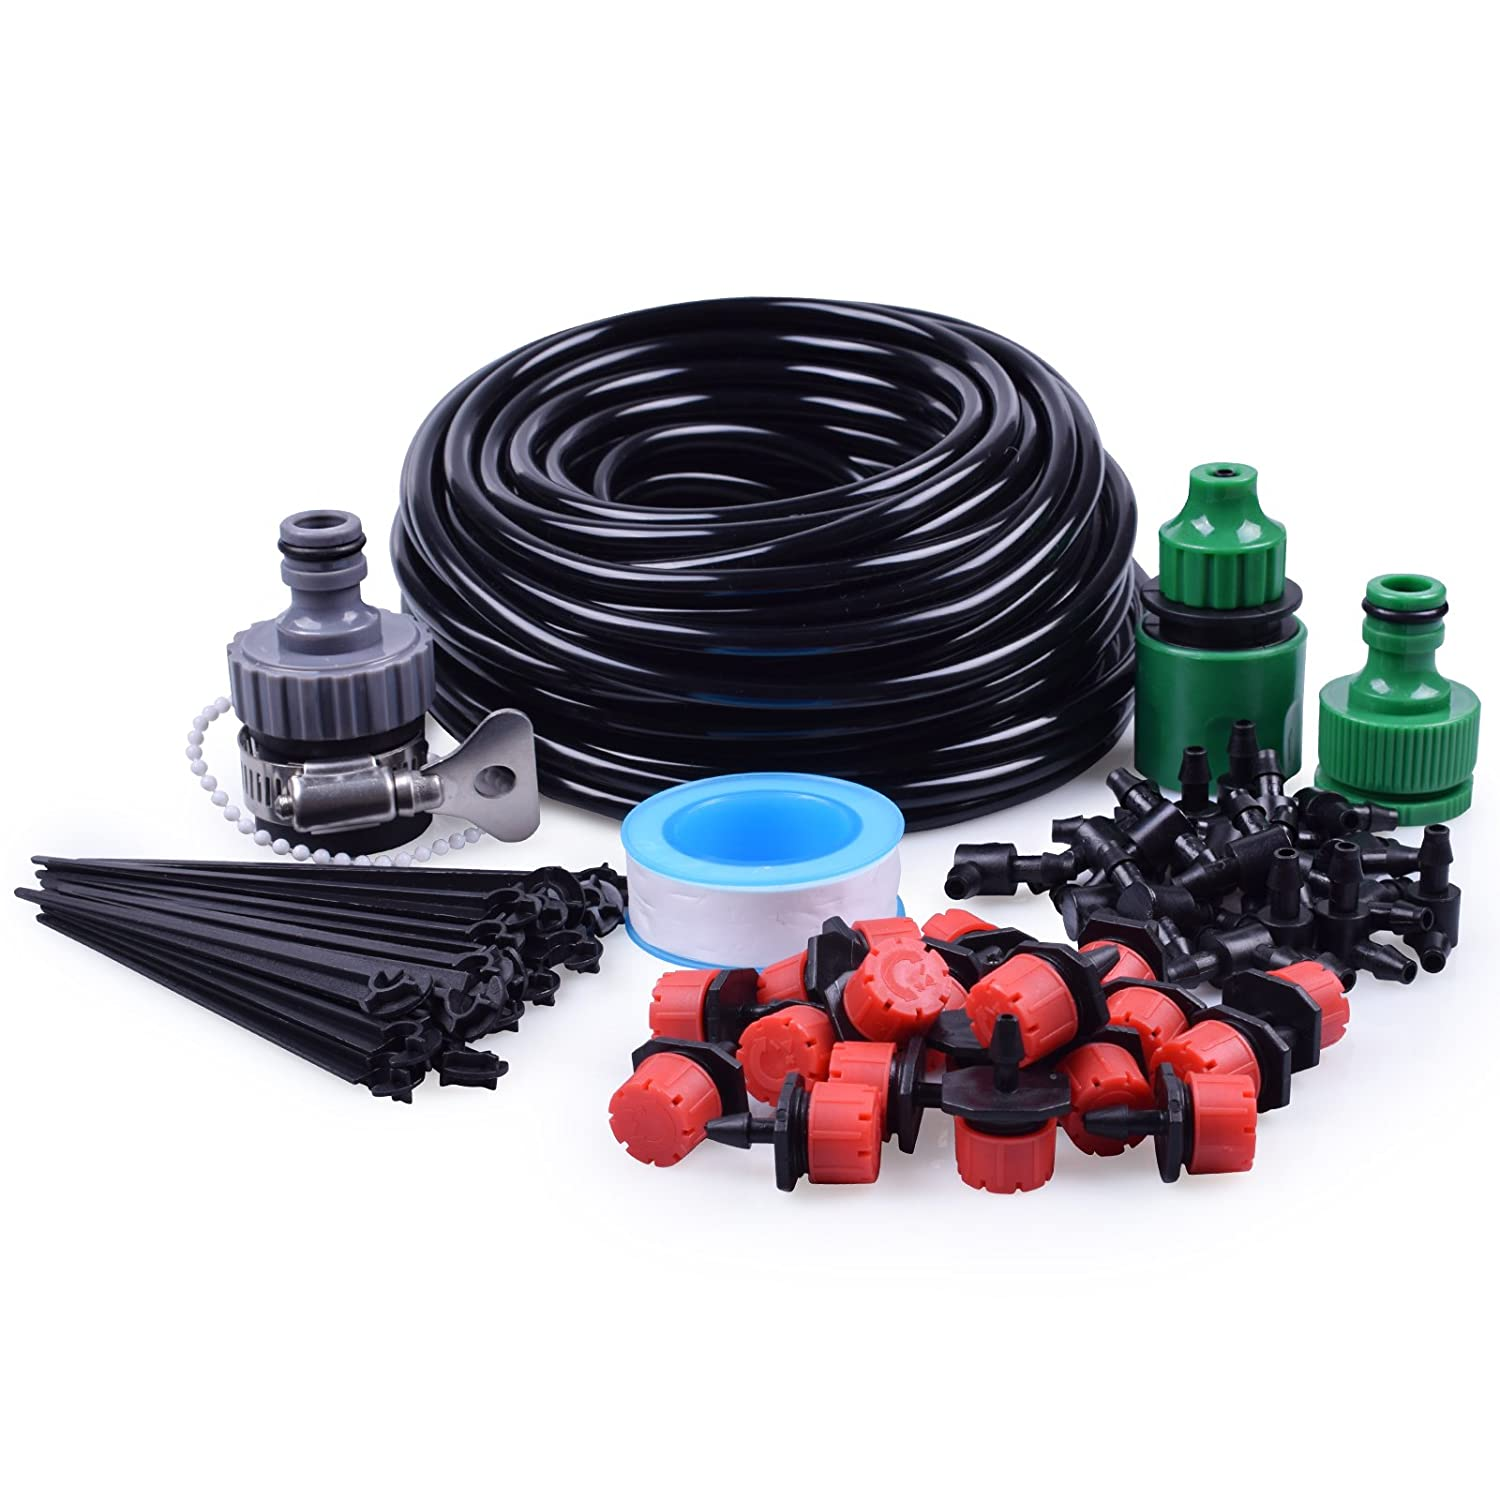 MIXC Micro Irrigation Drip Equipment 15M/50ft Irrigation Drip Watering System, Garden Automatic Irrigation, Automatic Plant Watering Drip, Sprinkler for Garden Landscape, Flowerbed Patio ,Greenhouse,Plants #UKGG0C